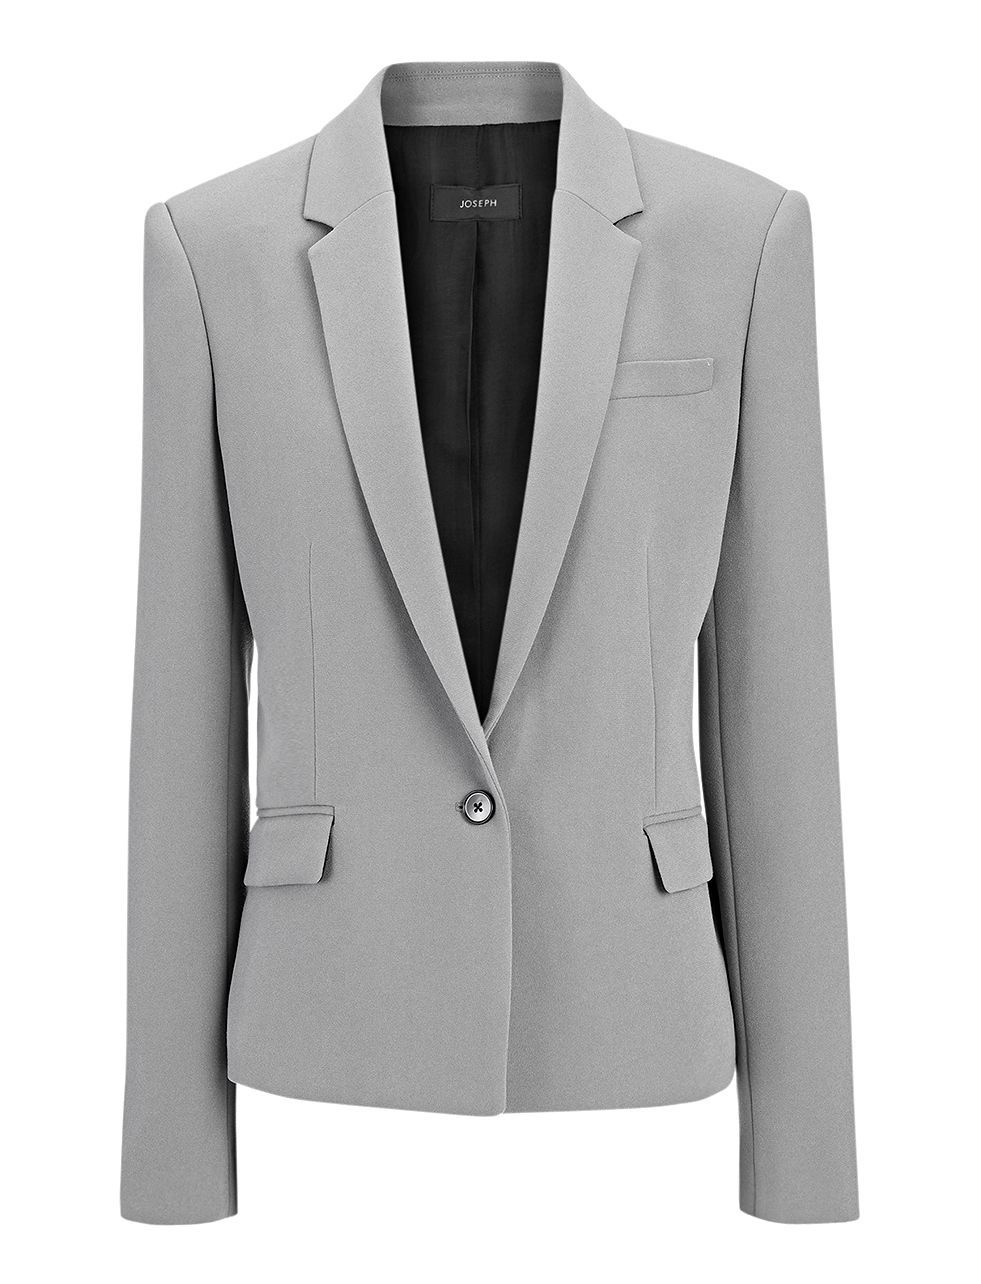 Crepe Stretch New Will Jacket In Slate Grey - pattern: plain; style: single breasted blazer; collar: standard lapel/rever collar; predominant colour: mid grey; occasions: evening, work; length: standard; fit: tailored/fitted; fibres: polyester/polyamide - mix; sleeve length: long sleeve; sleeve style: standard; collar break: medium; pattern type: fabric; texture group: woven light midweight; season: a/w 2015; wardrobe: investment